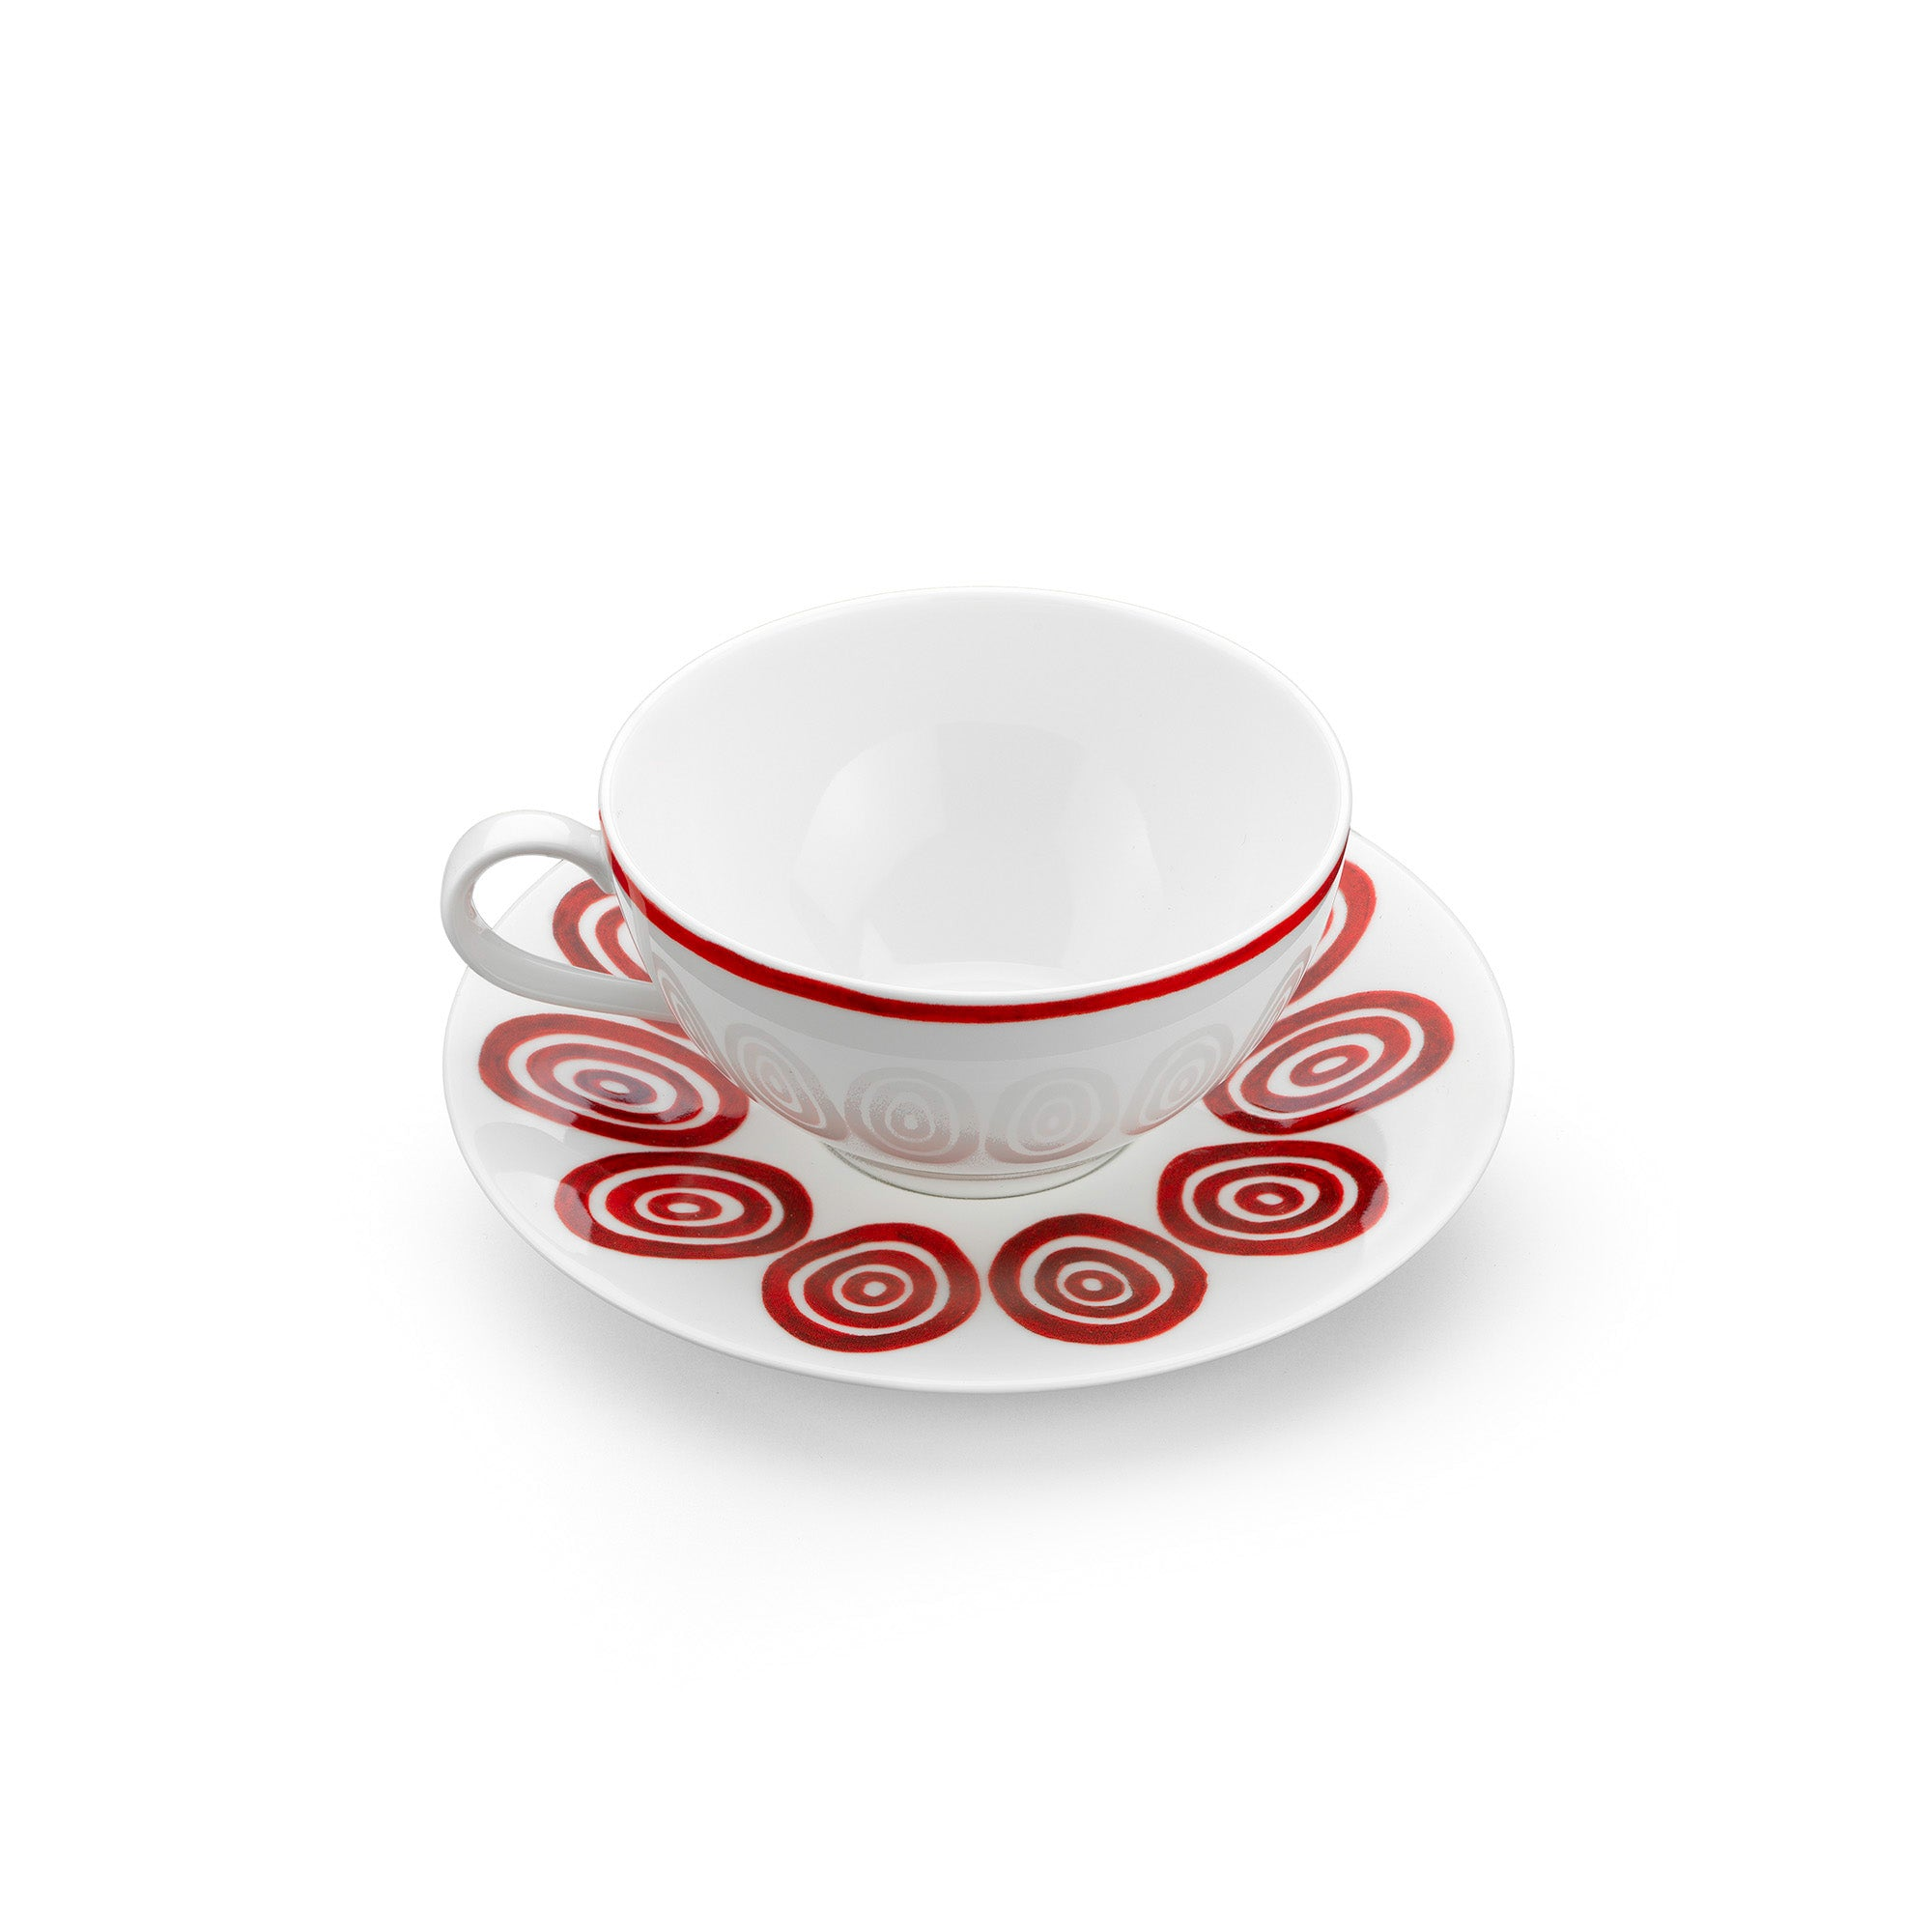 The Kyklos Coffee or Tea Cup